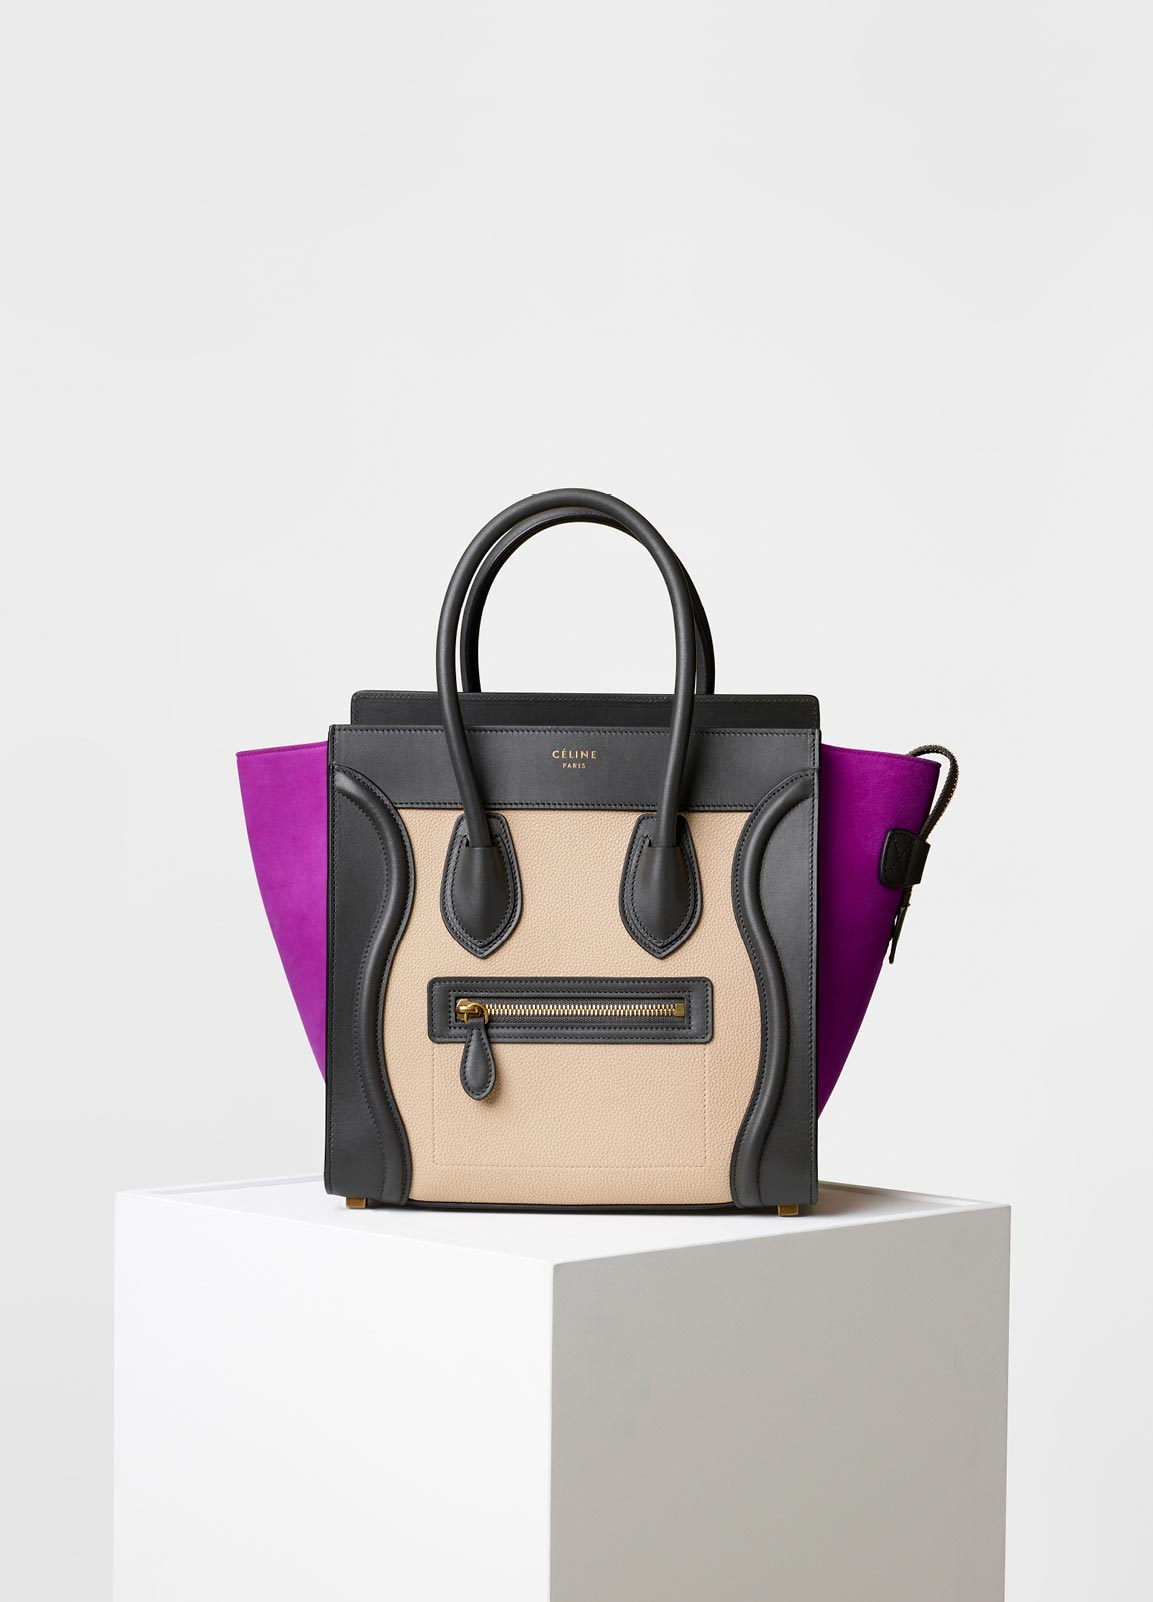 Celine handbag bag 2017 spring collection season